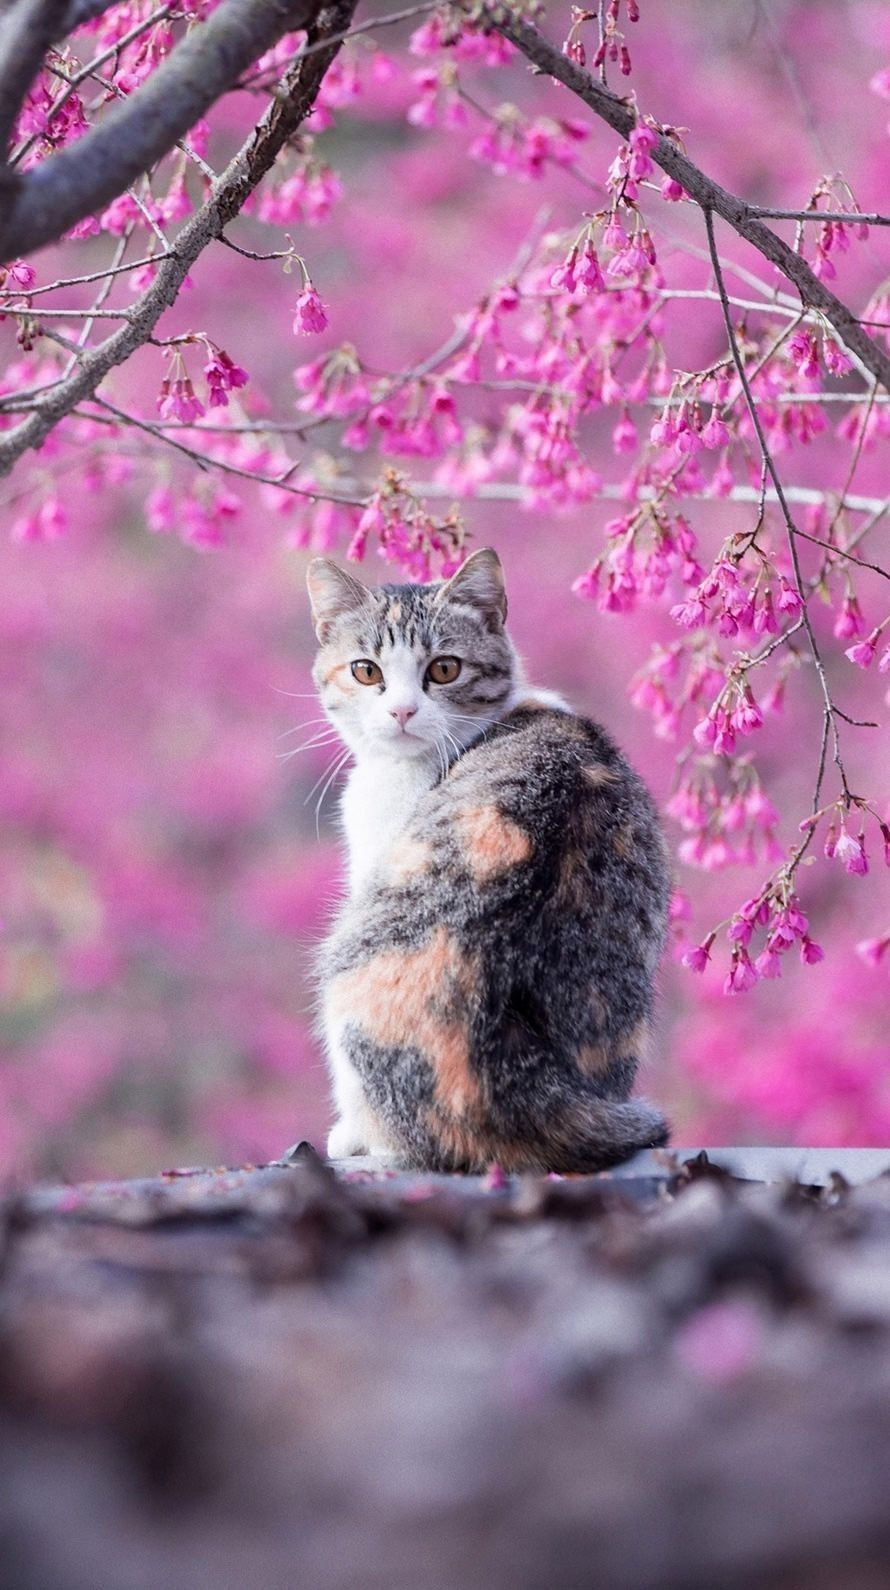 Beautiful Background And Beautiful Cat It Is A Master Piece Don T You Think Pretty Cats Cats Cute Cats And Kittens